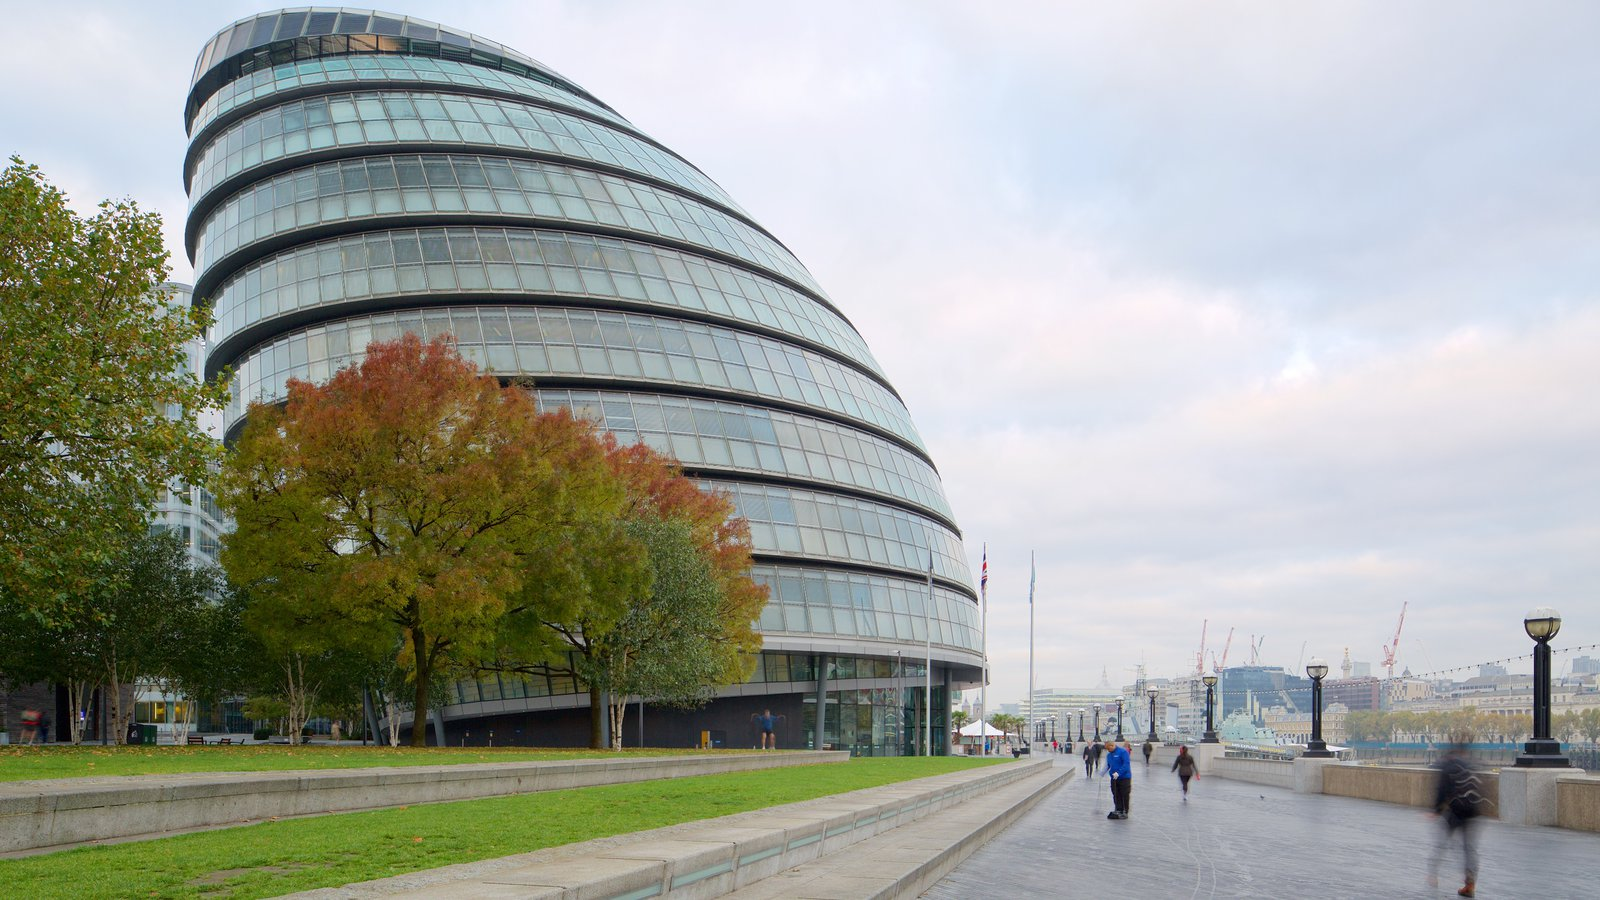 London City Hall which includes modern architecture and an administrative buidling